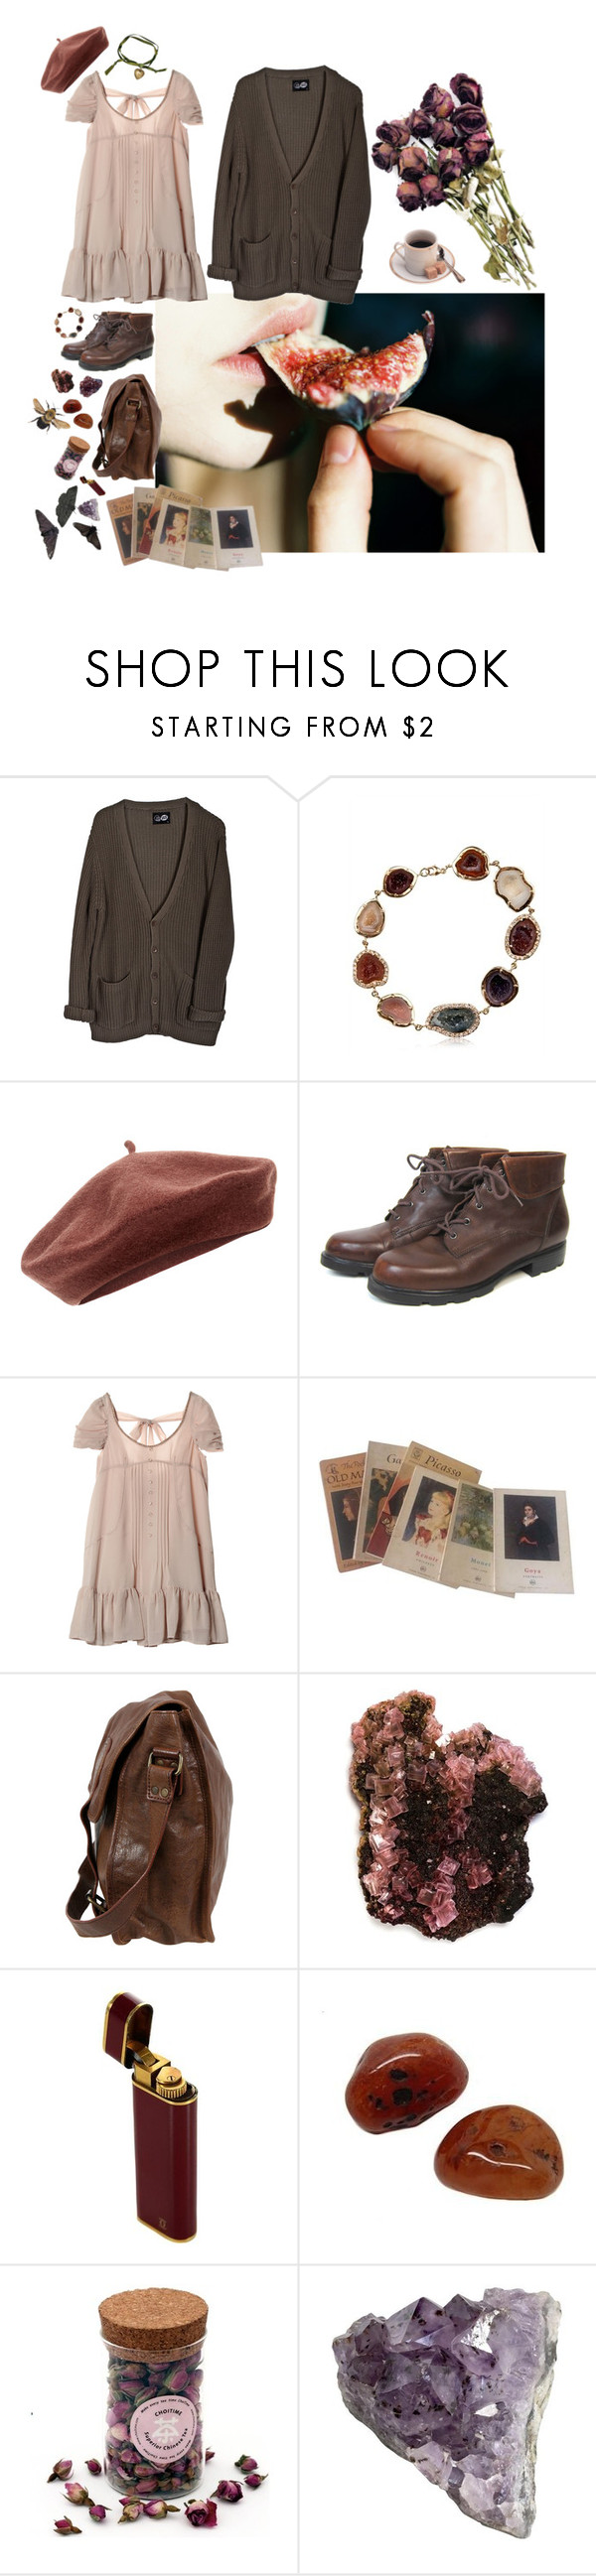 """""""Fig"""" by faelike ❤ liked on Polyvore featuring Cheap Monday, Kimberly McDonald, Accessorize, Monet and VIPARO"""